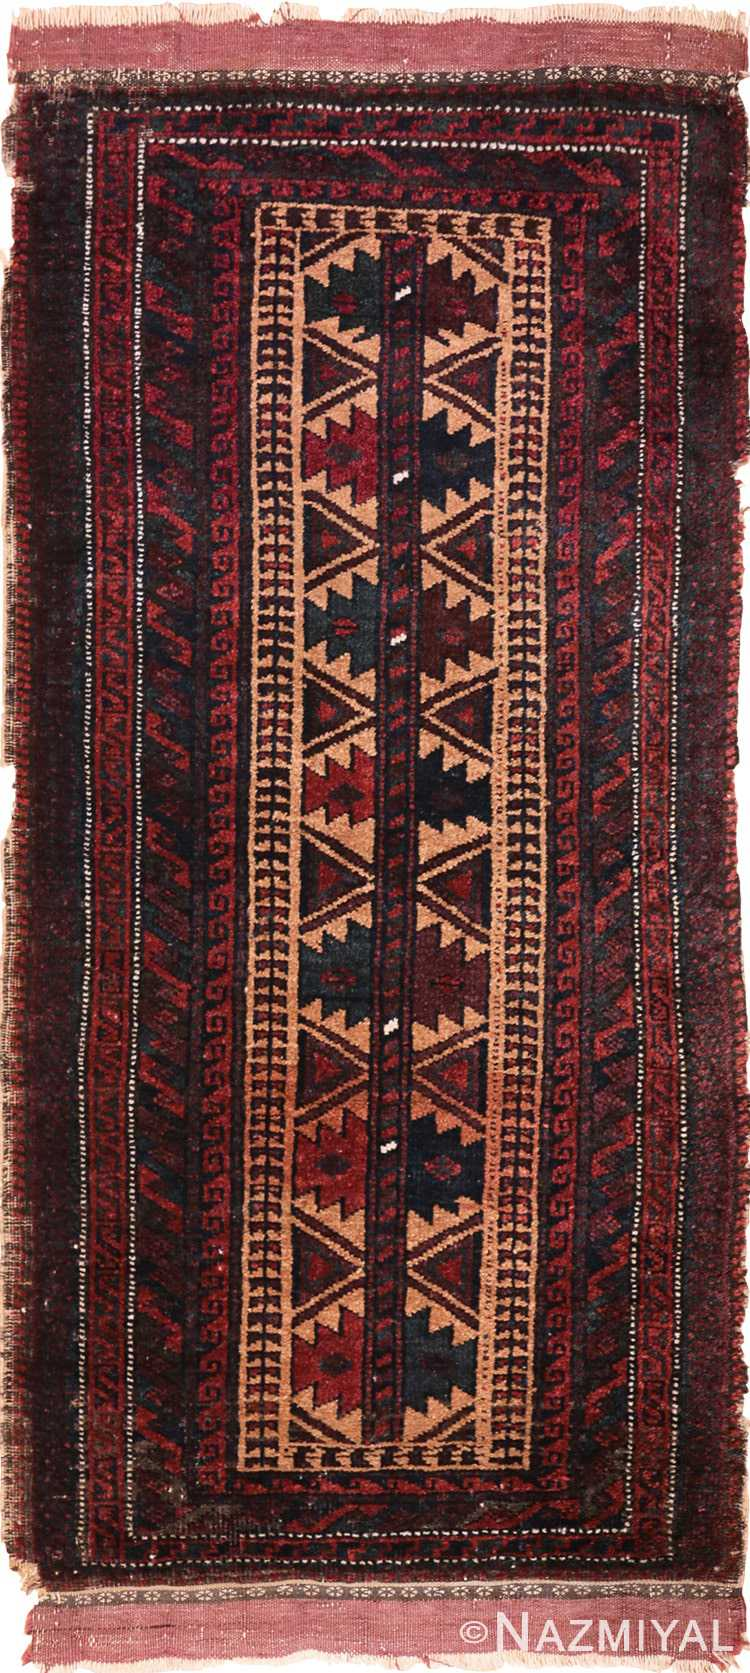 Full view Small Scatter size Antique Persian Baluch rug 2529 by Nazmiyal